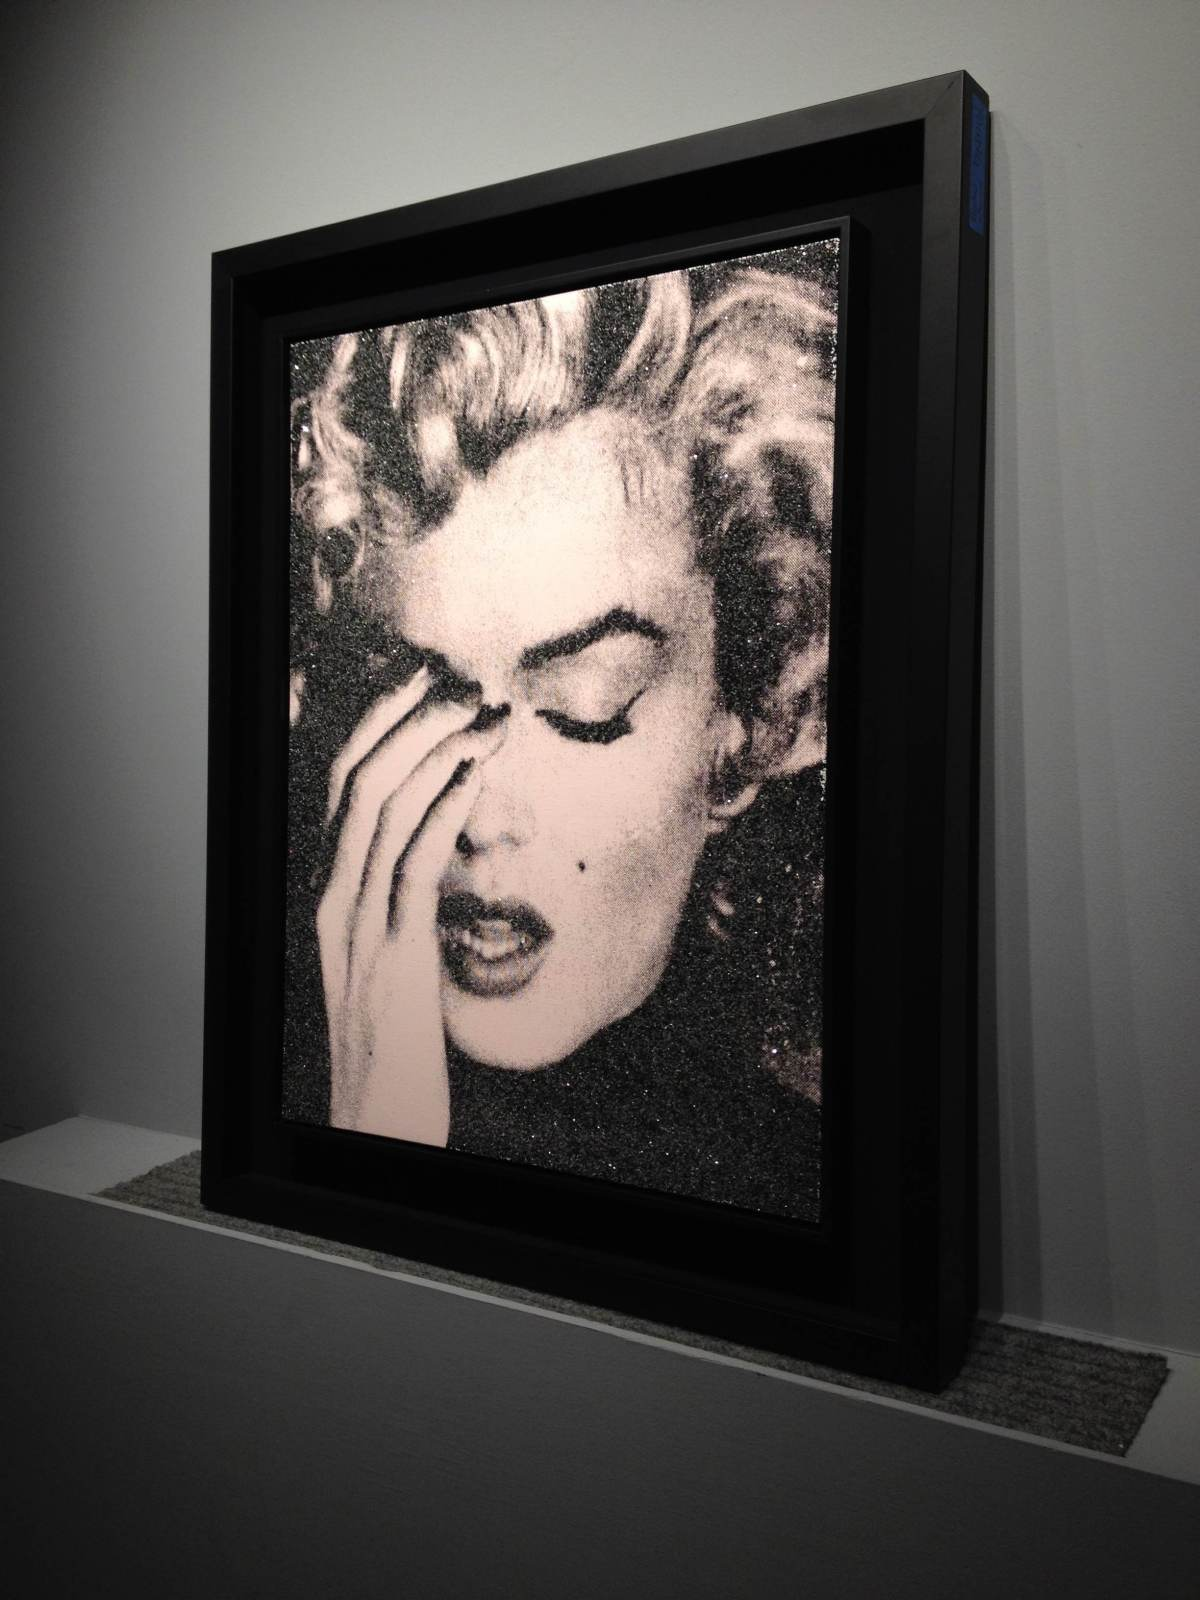 Russell Young, Marilyn Crying, 2013